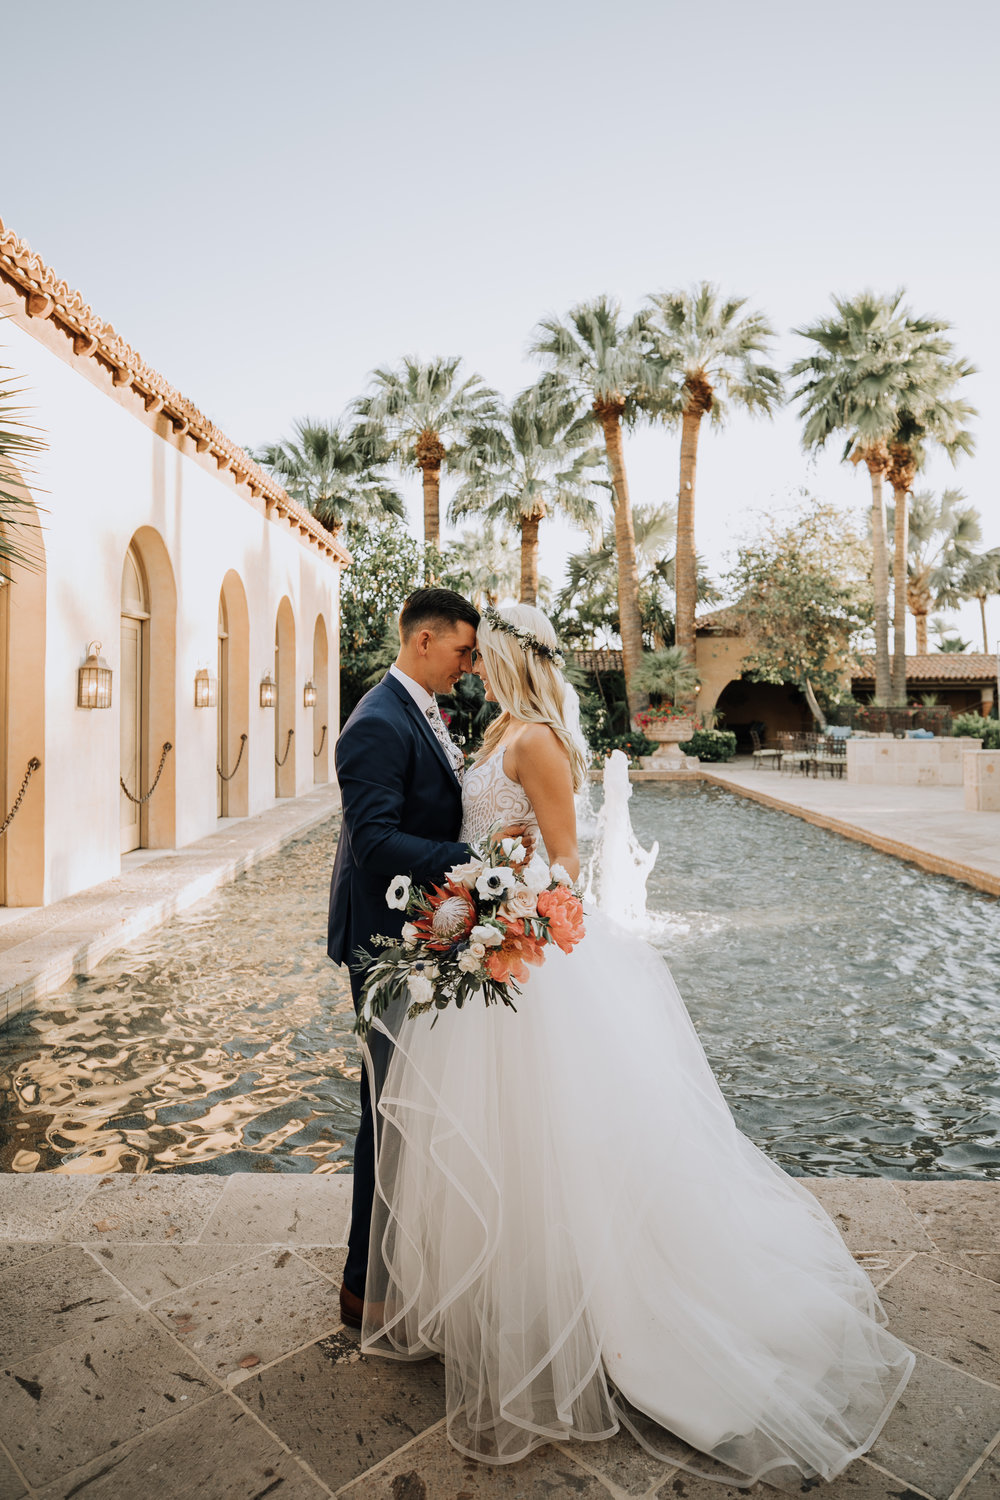 Bride and Groom at Royal Palms Wedding